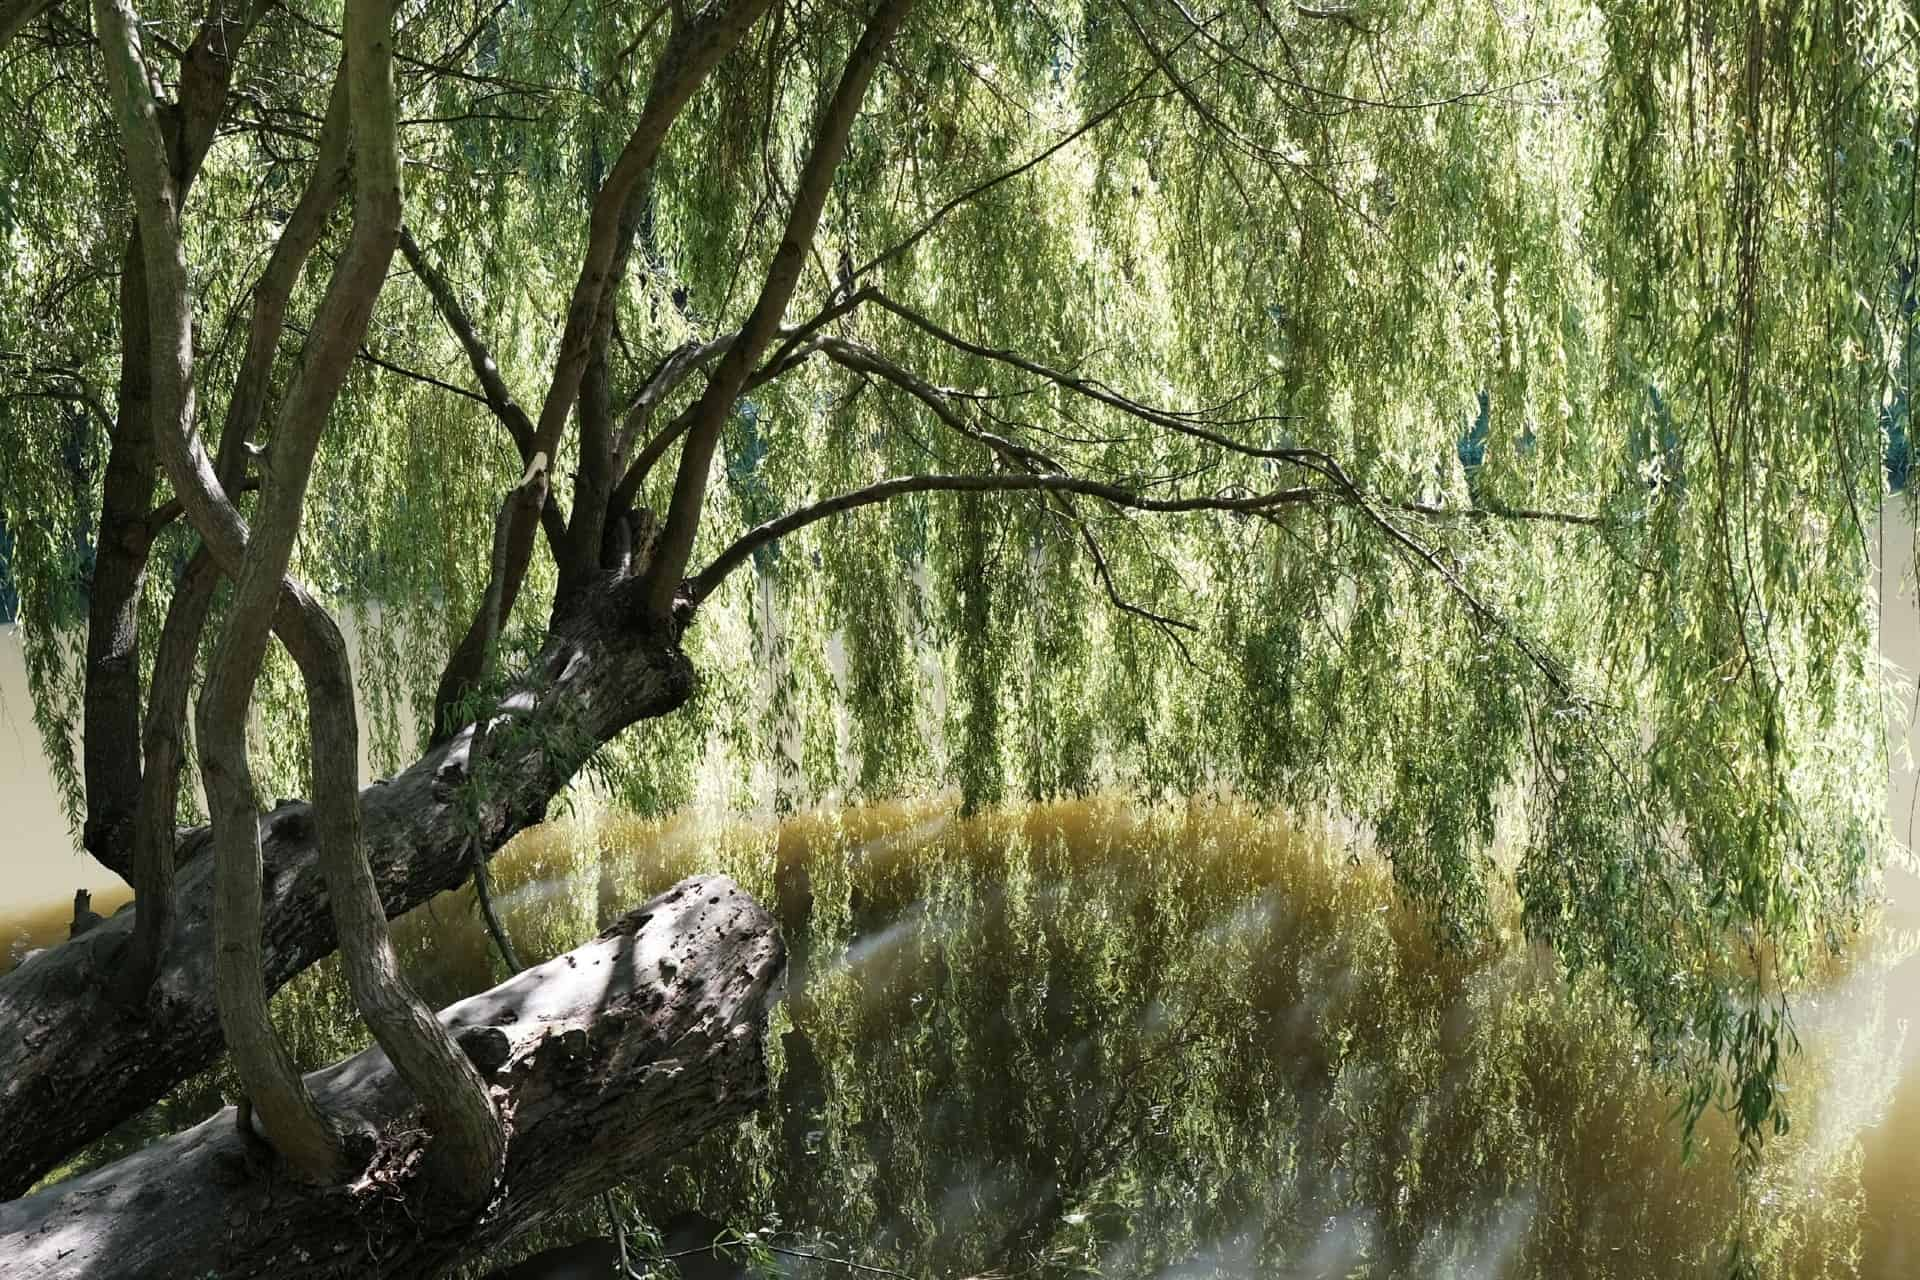 Weeping willow has stunning droopy leaves.